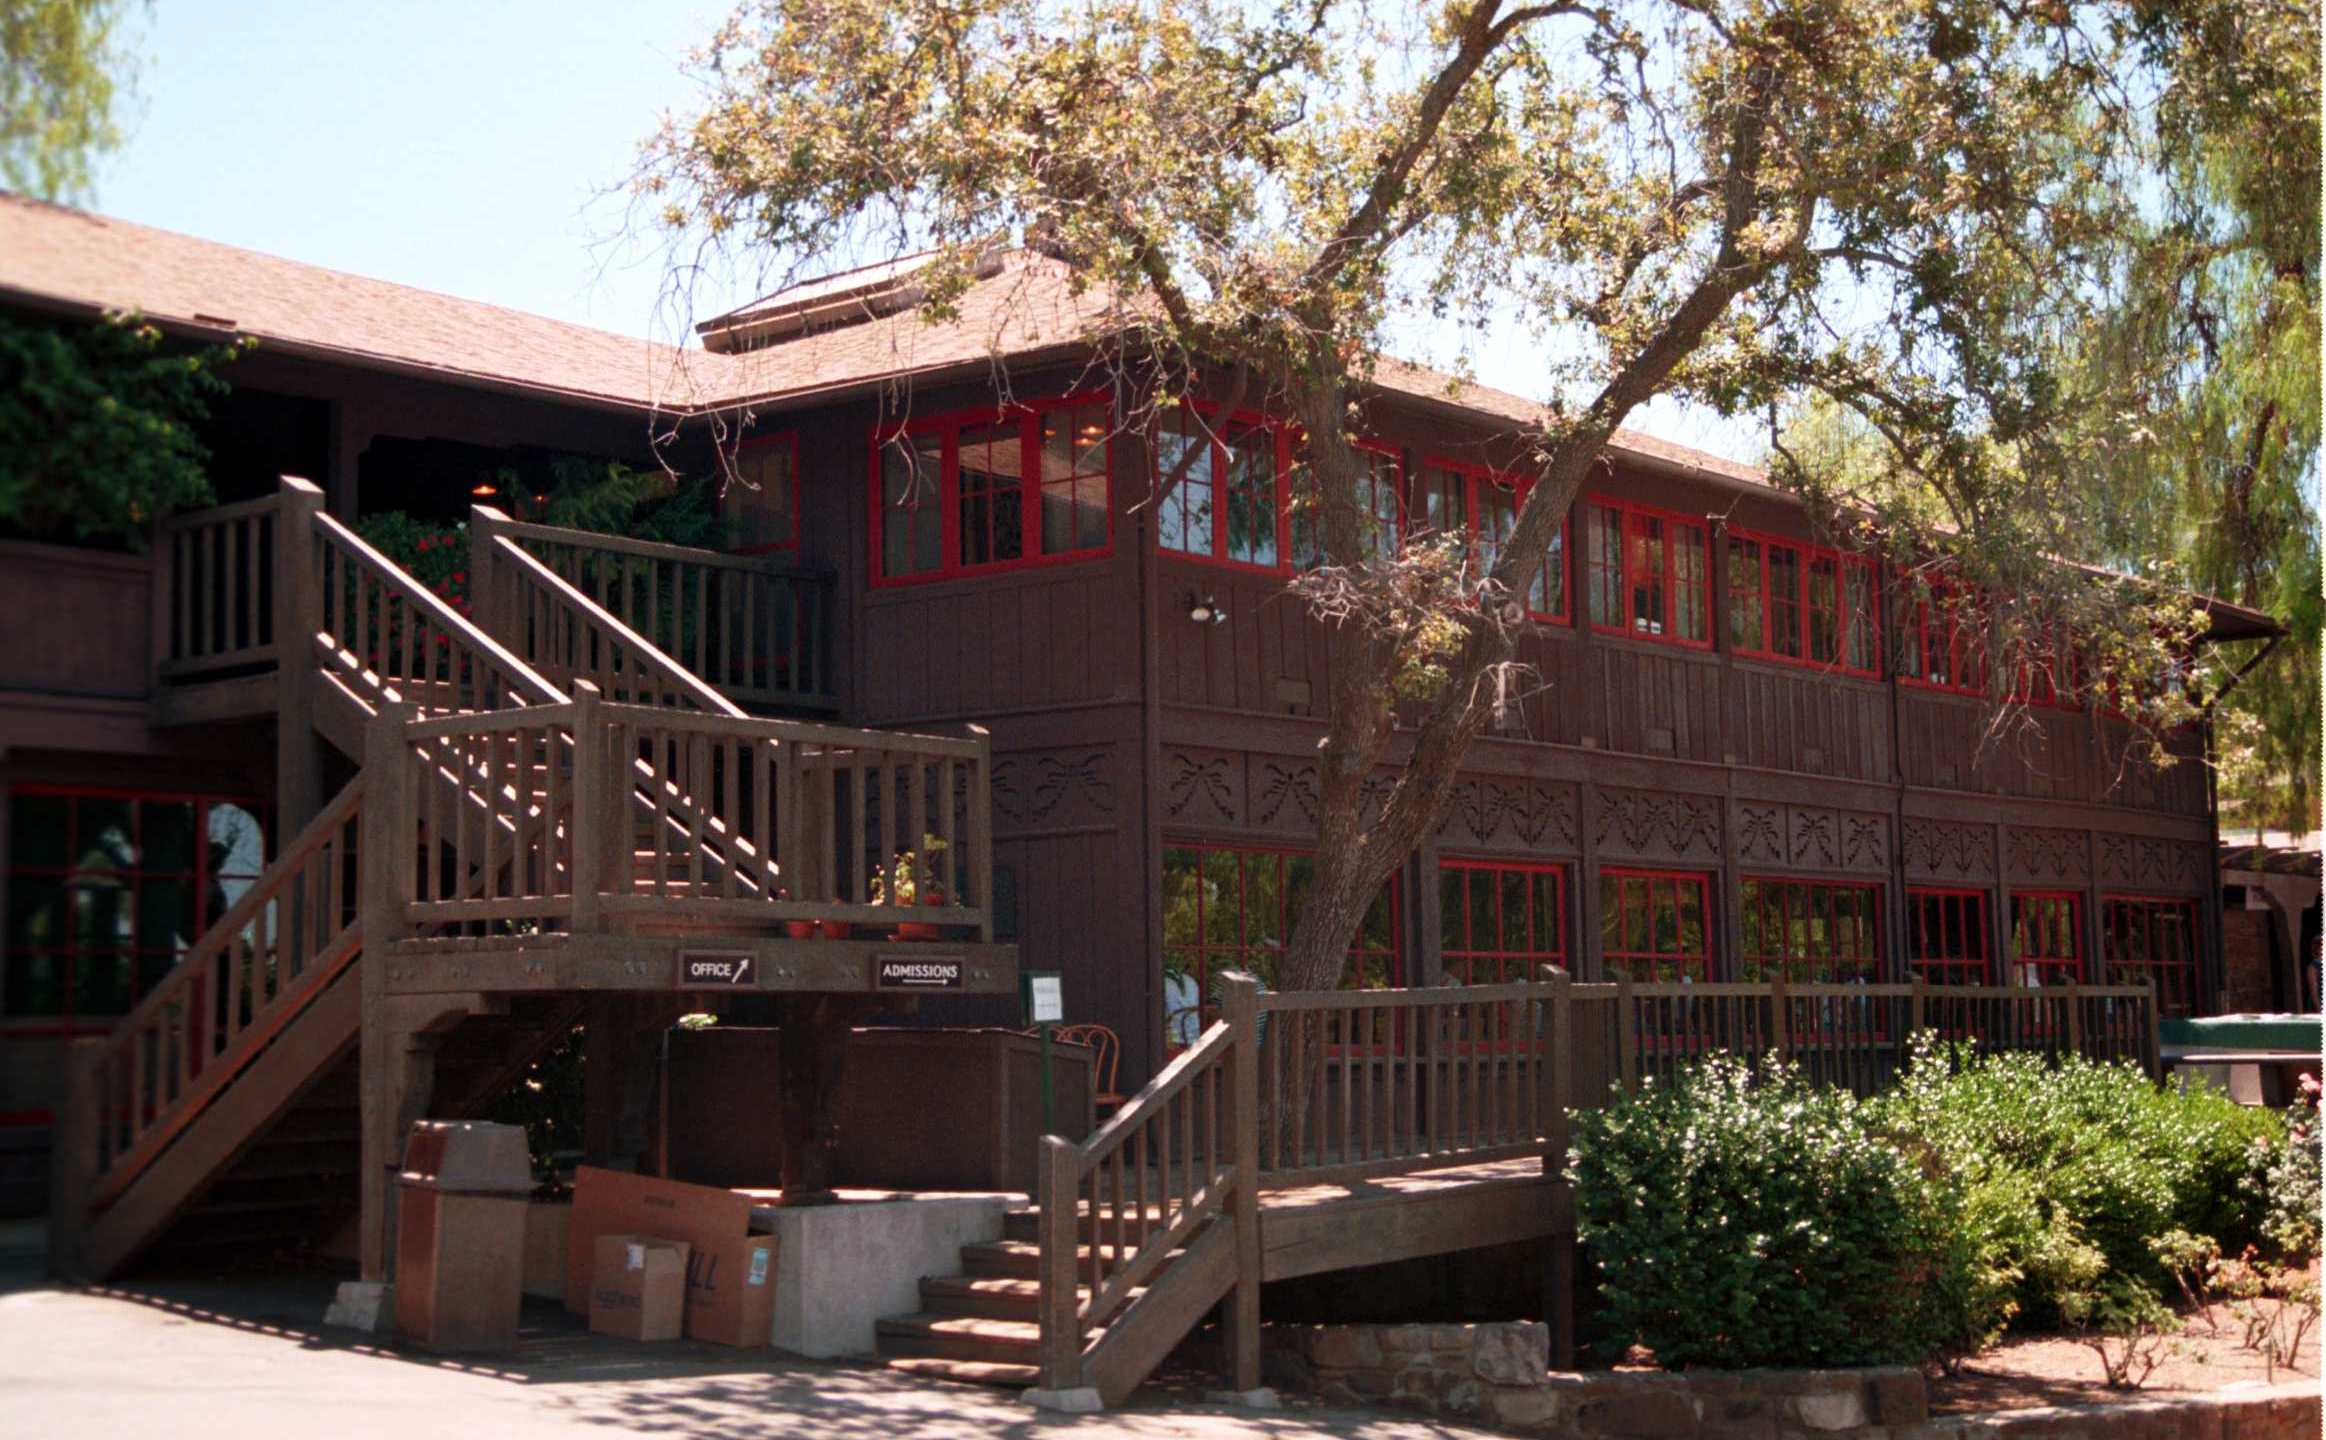 The Thacher School in Ojai is seen in July 21, 2000. (Frederick M. Brown / Online USA via Getty Images)